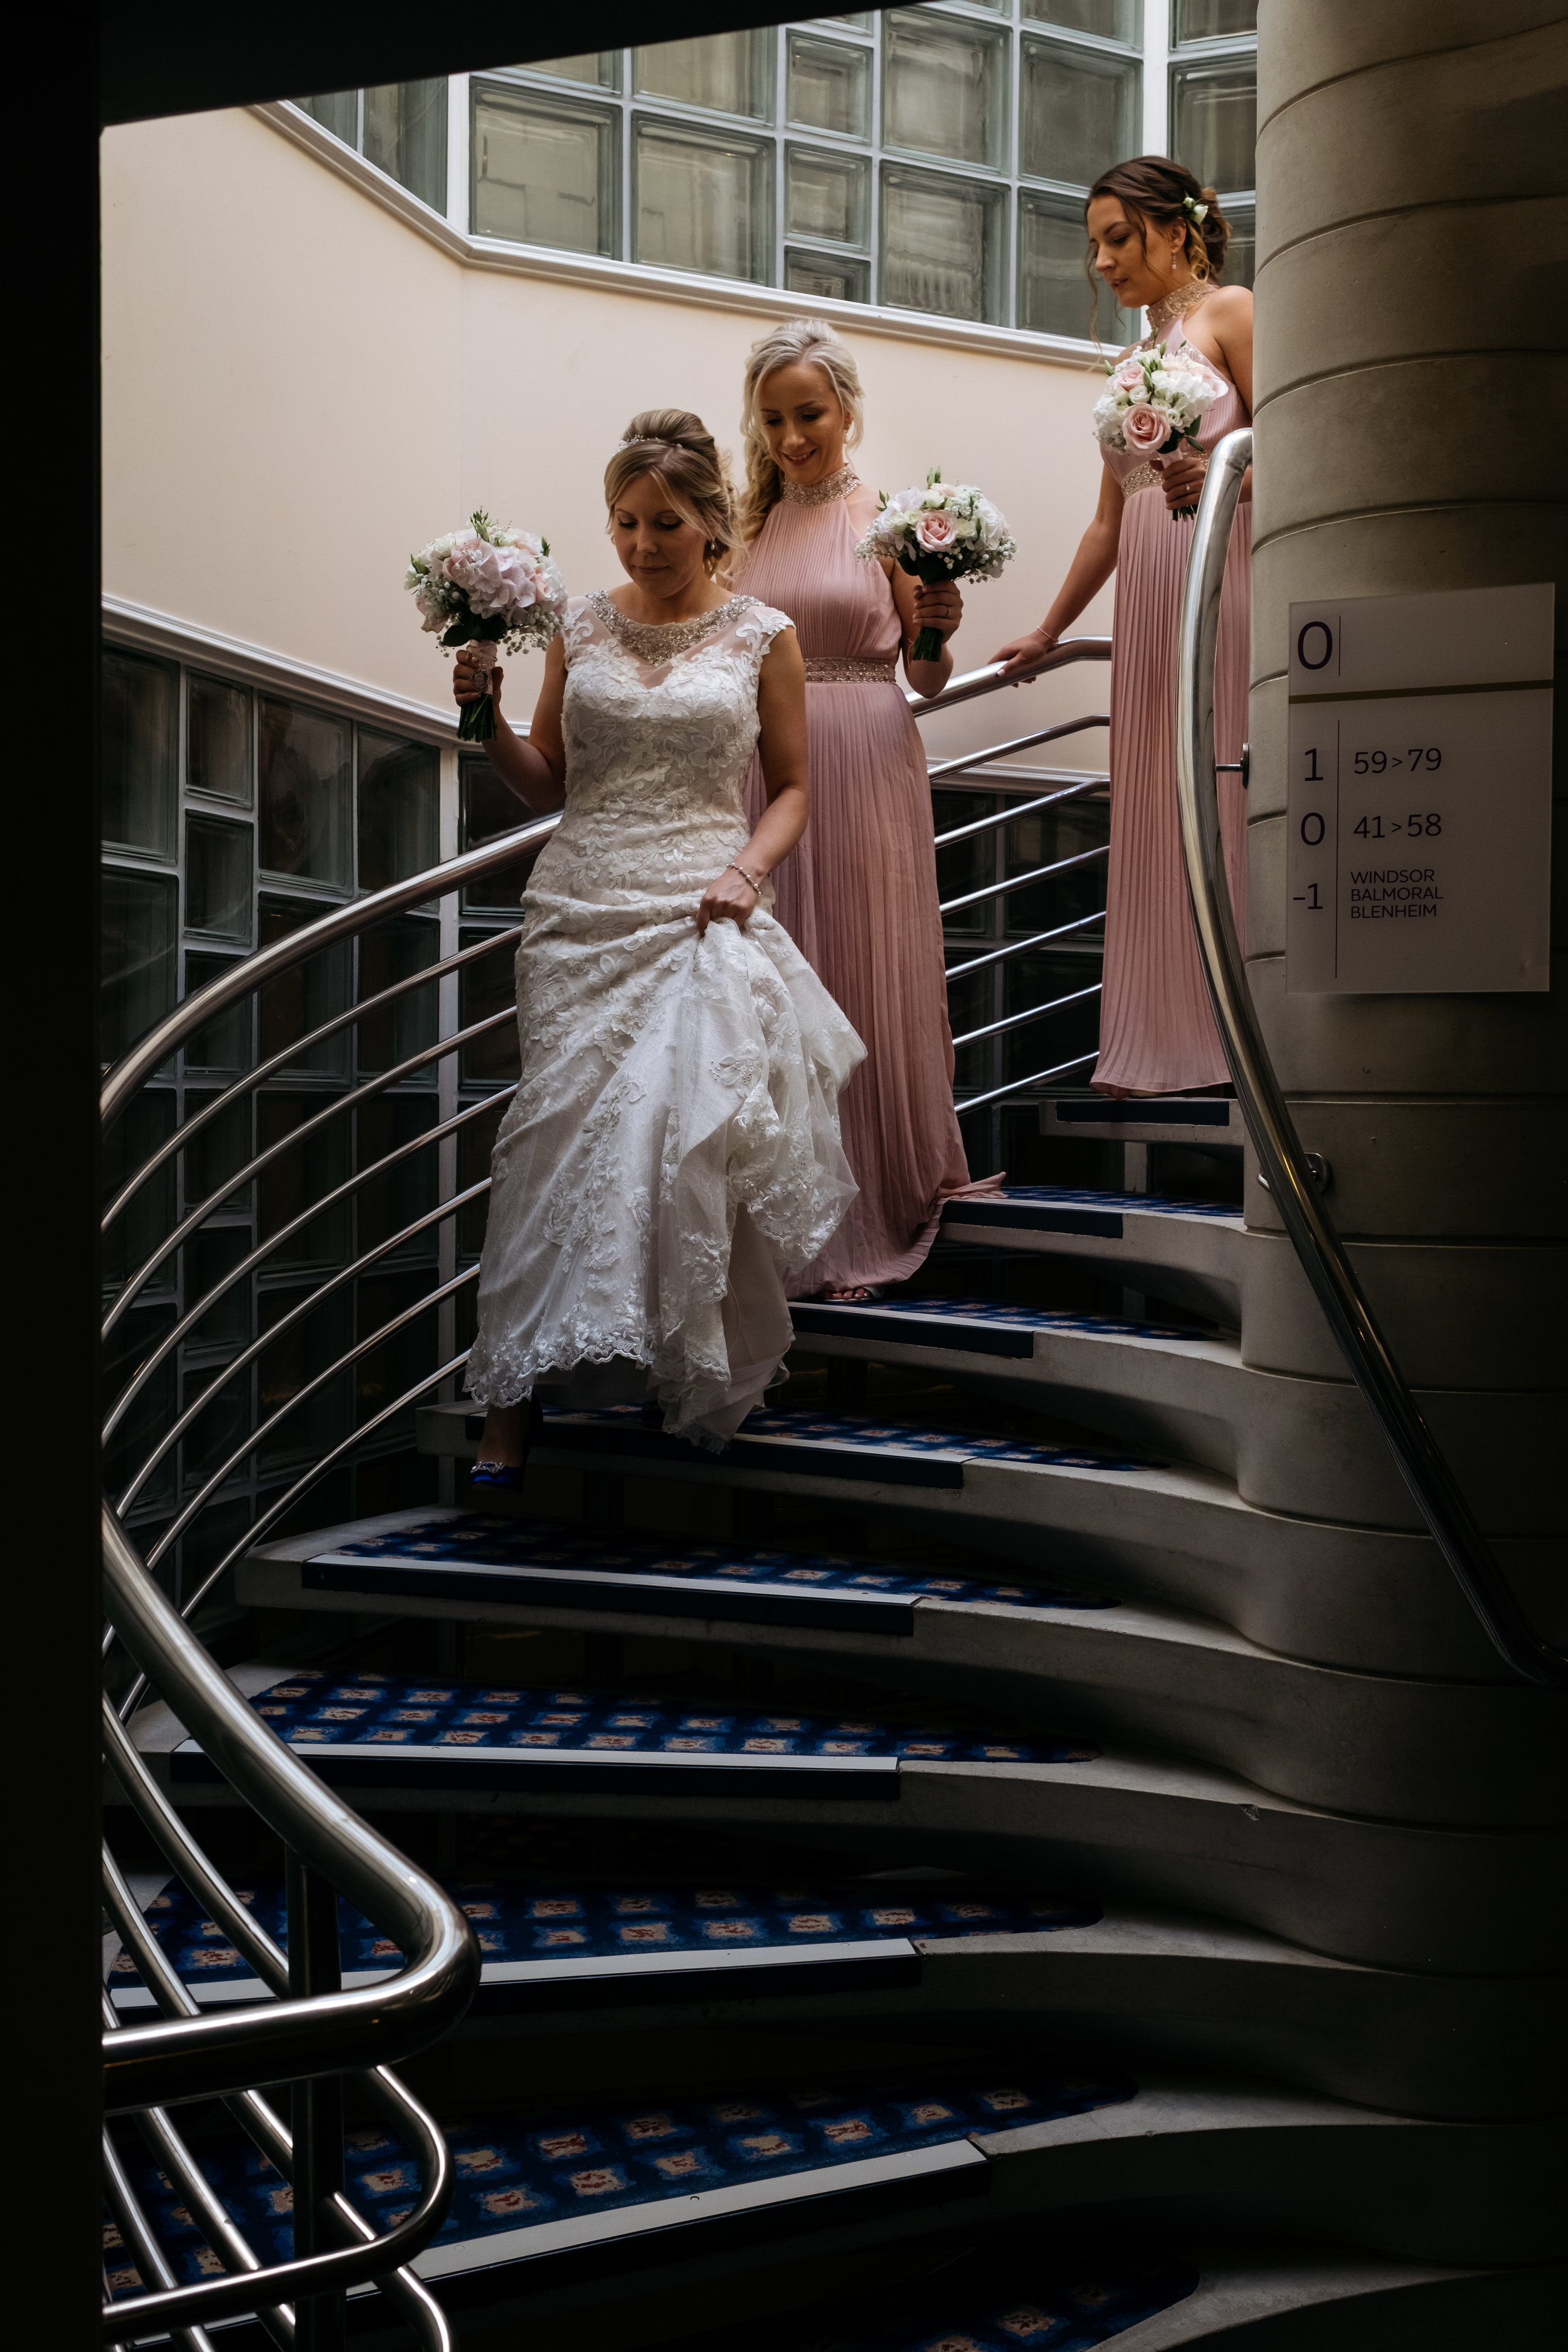 Bride and bridesmaids walking down spiral staircase on way to wedding ceremony